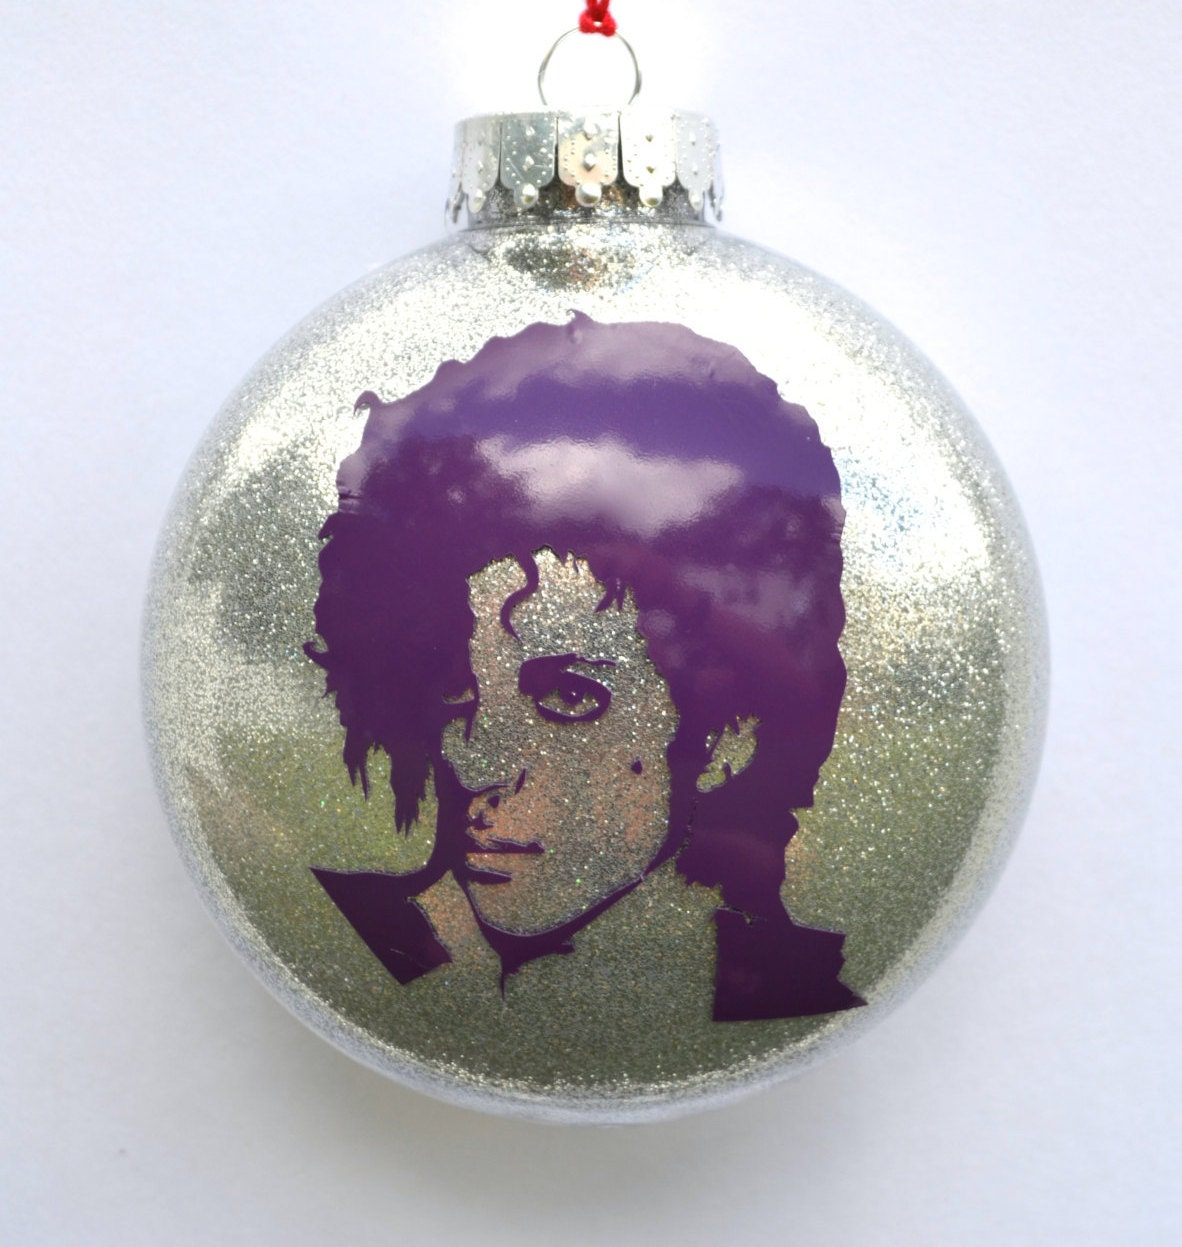 Dad christmas ornament - Prince Christmas Tree Ornament Great Gift For Music Lover Mom Dad Coworker